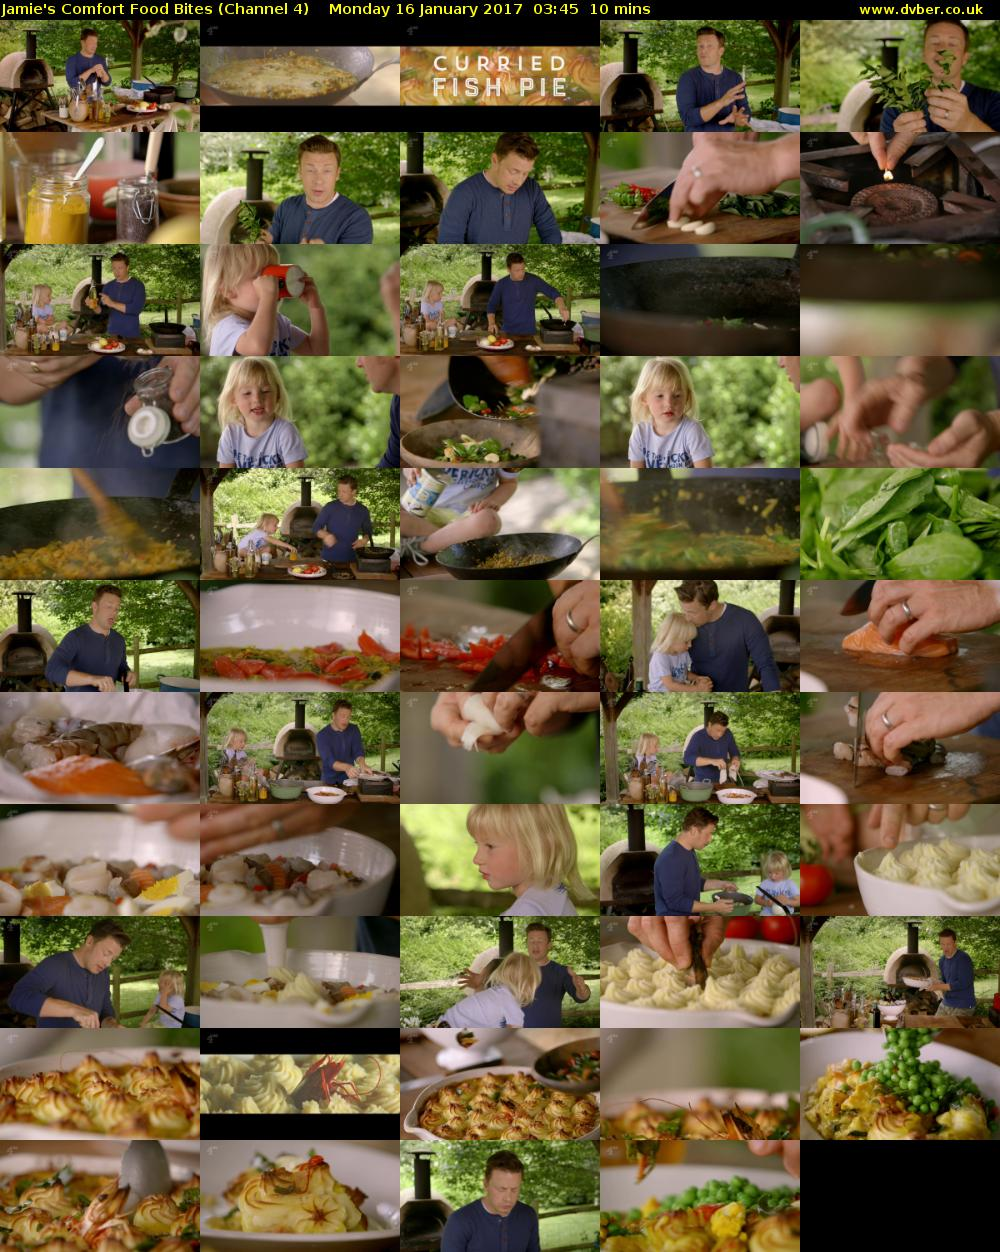 Jamie's Comfort Food Bites (Channel 4) Monday 16 January 2017 03:45 - 03:55